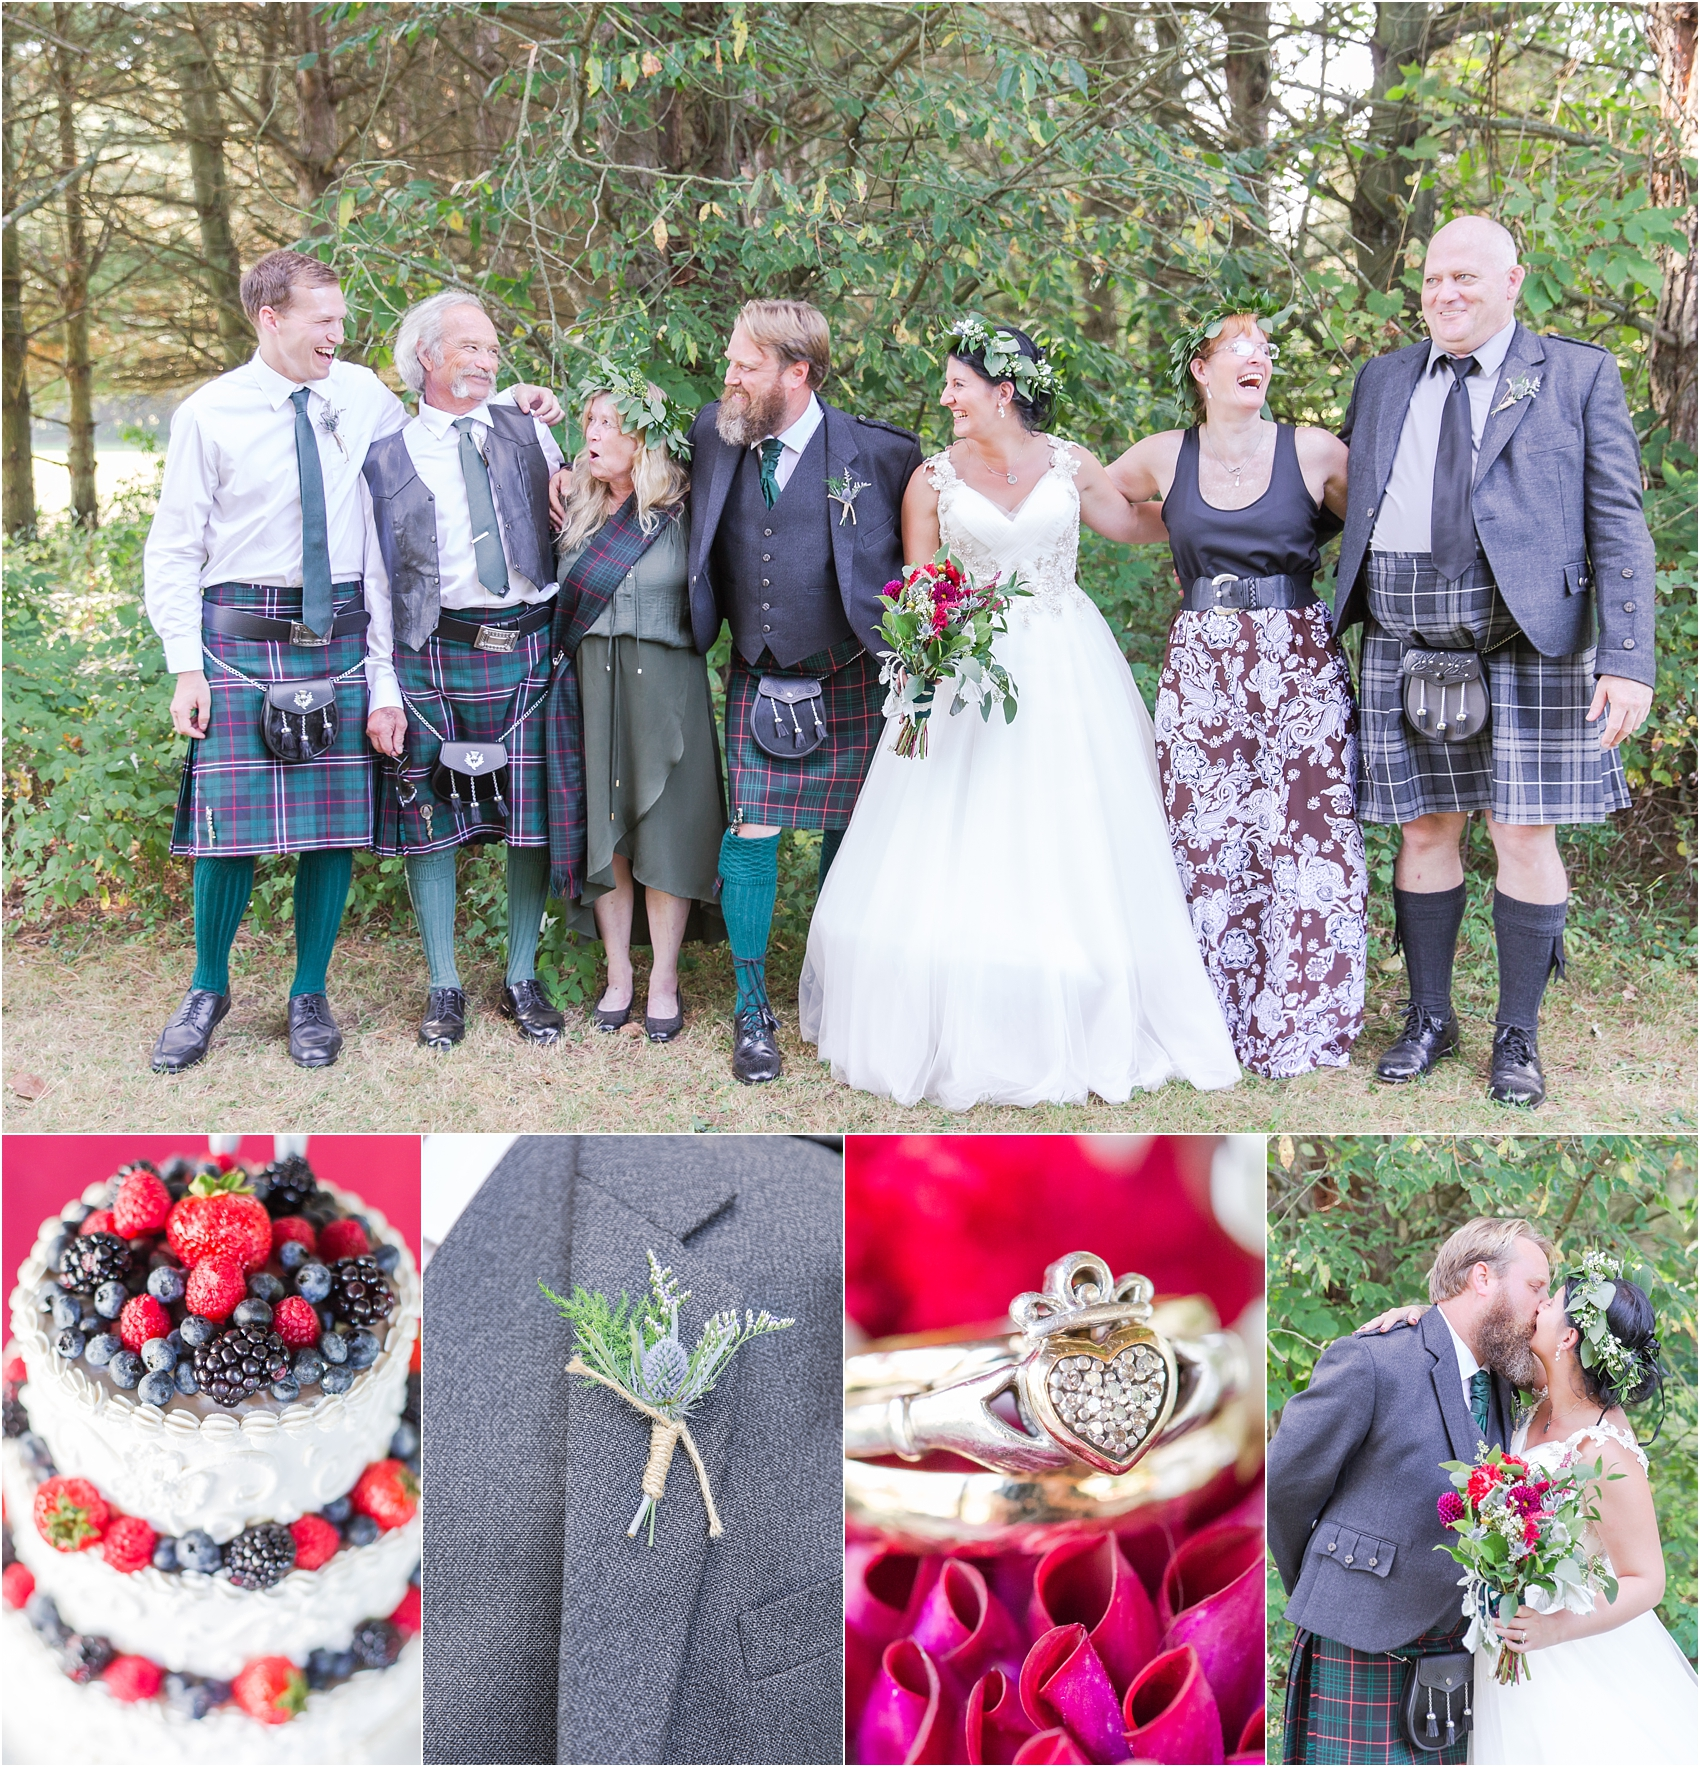 scottish-inspired-wedding-photos-in-the-country-in-port-sanilac-michigan-by-courtney-carolyn-photography_0075.jpg